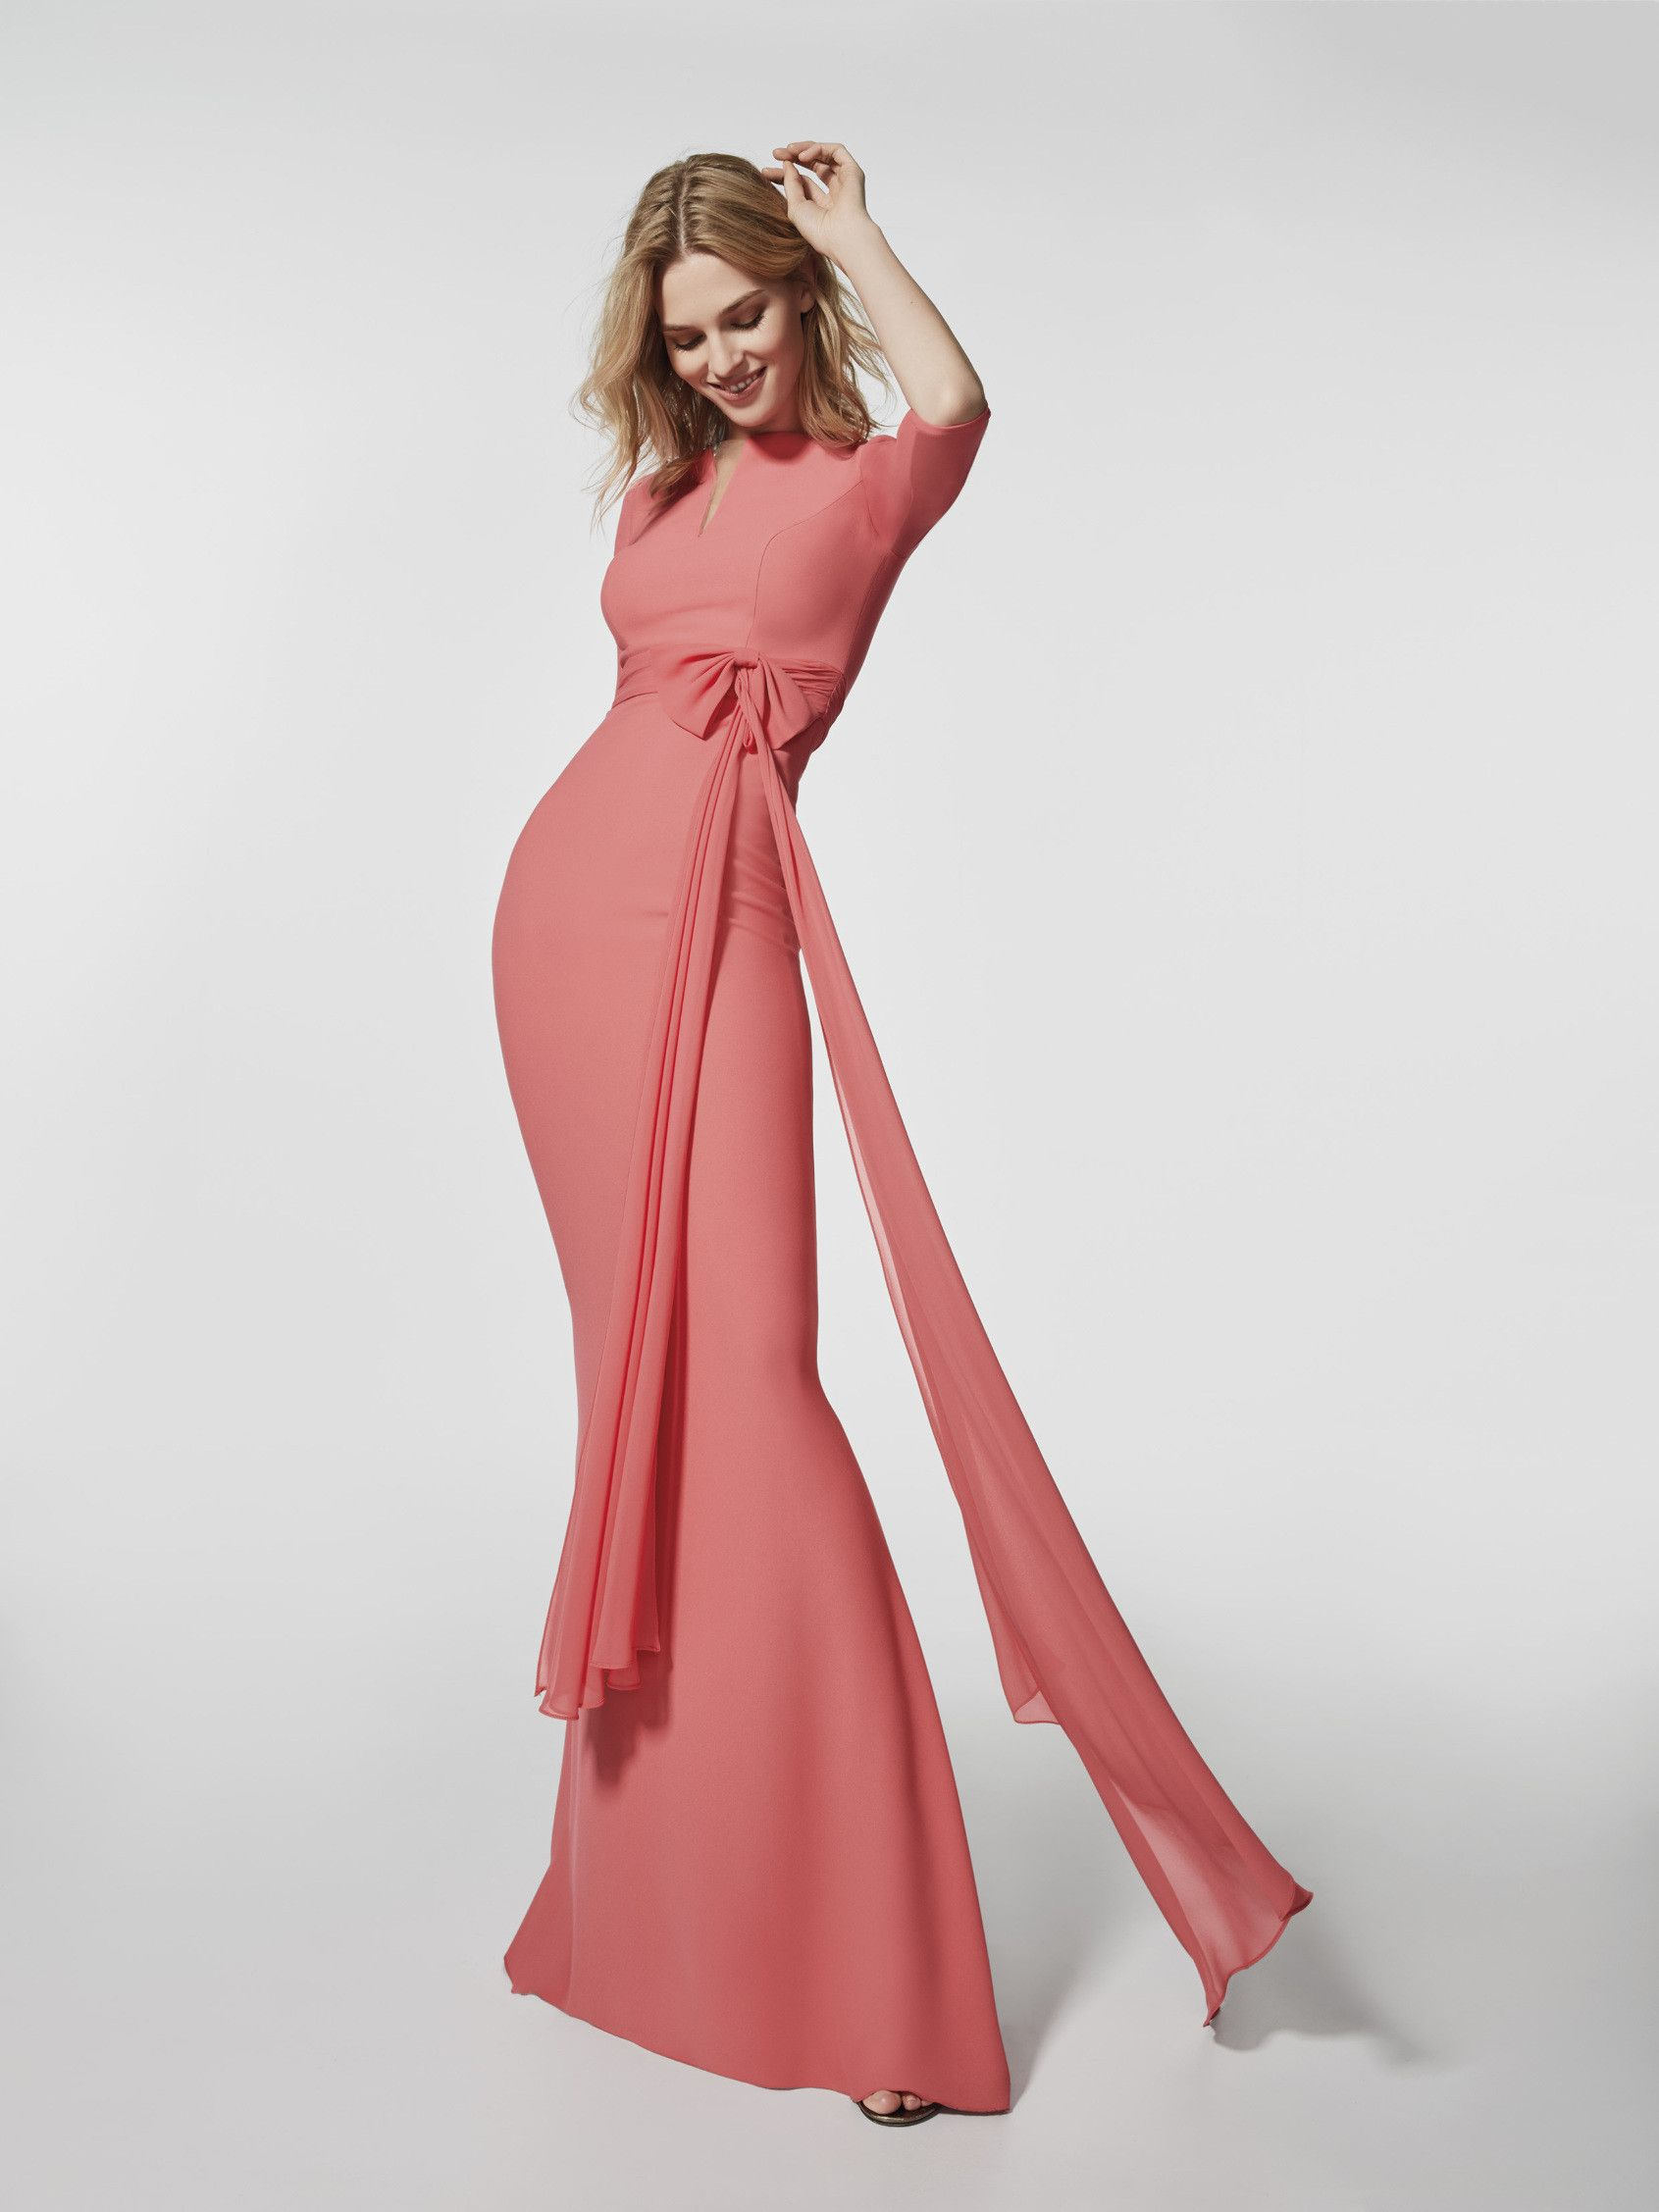 Pink cocktail dress - Long dress GRUPEN - 3/4 sleeves | Pronovias ...